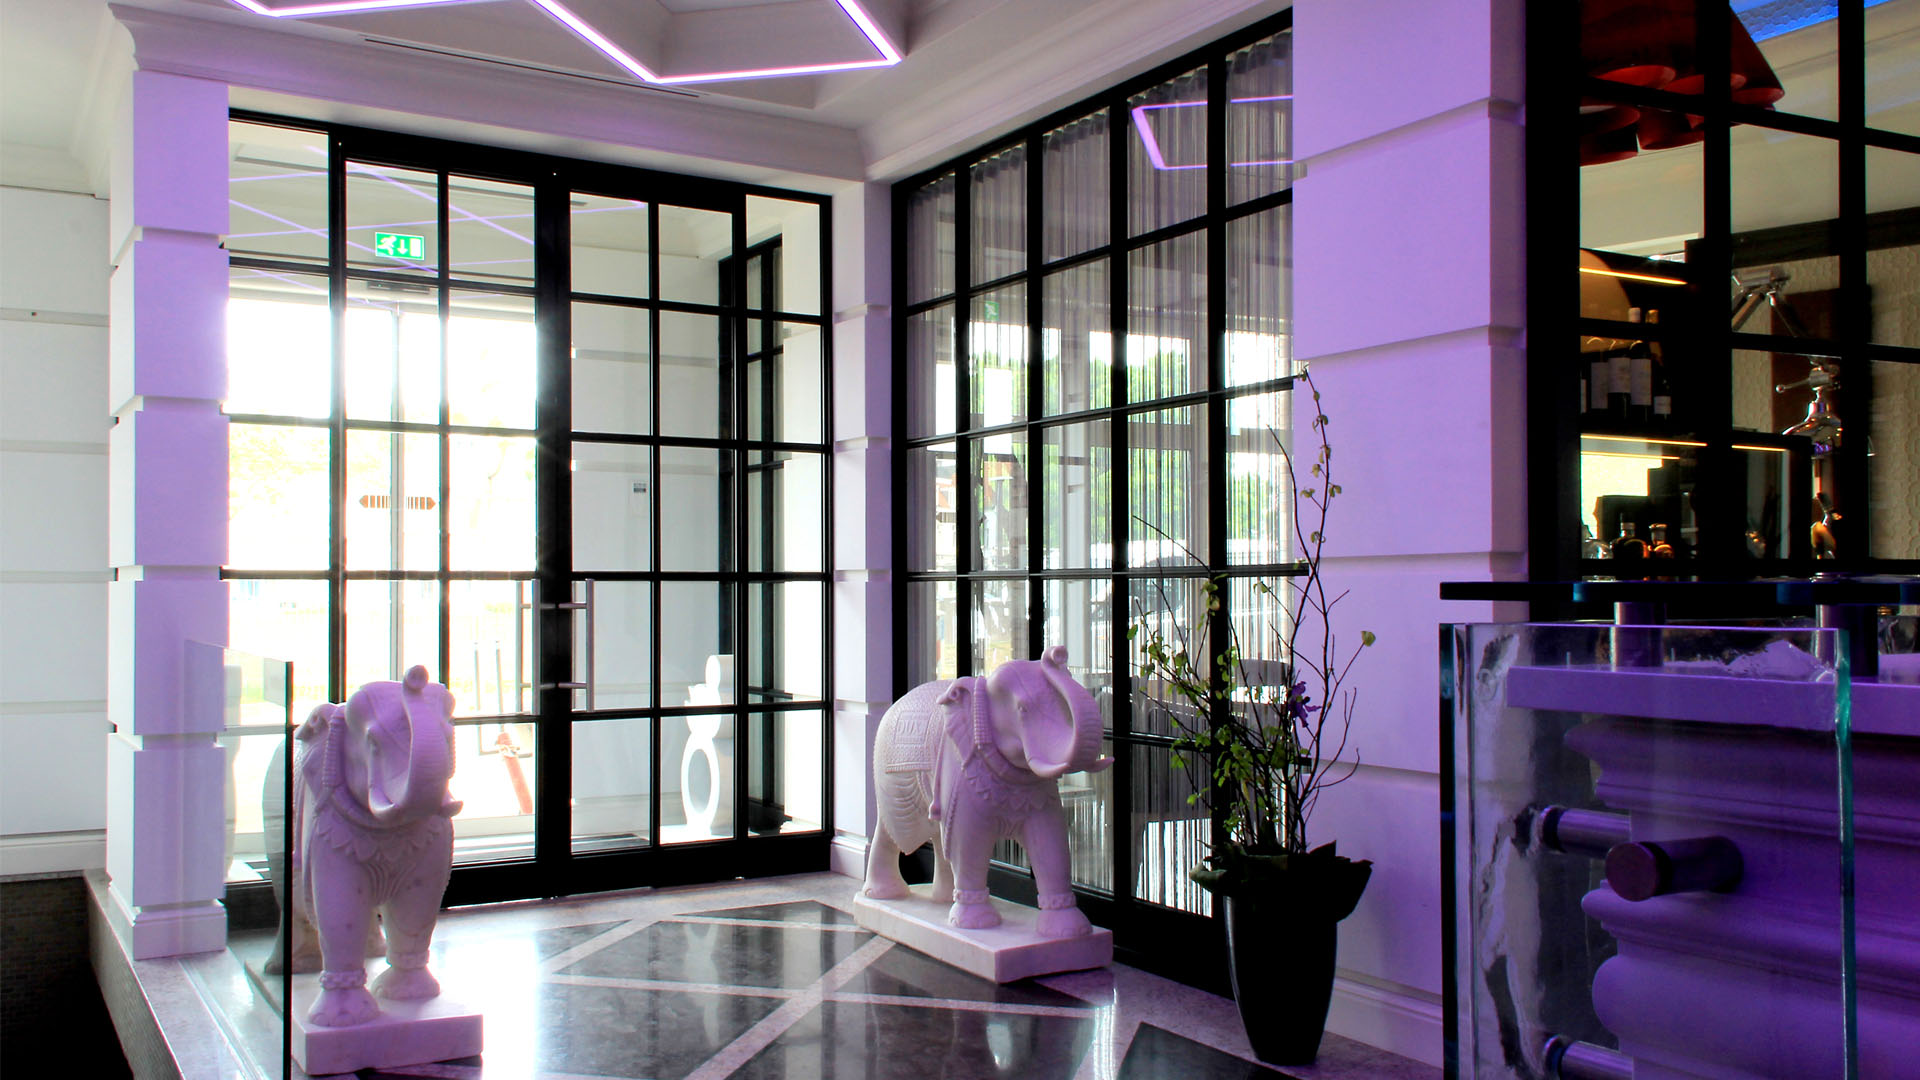 MHB indoor partitions in purple lit Hotel Dux, Roermond, The Netherlands